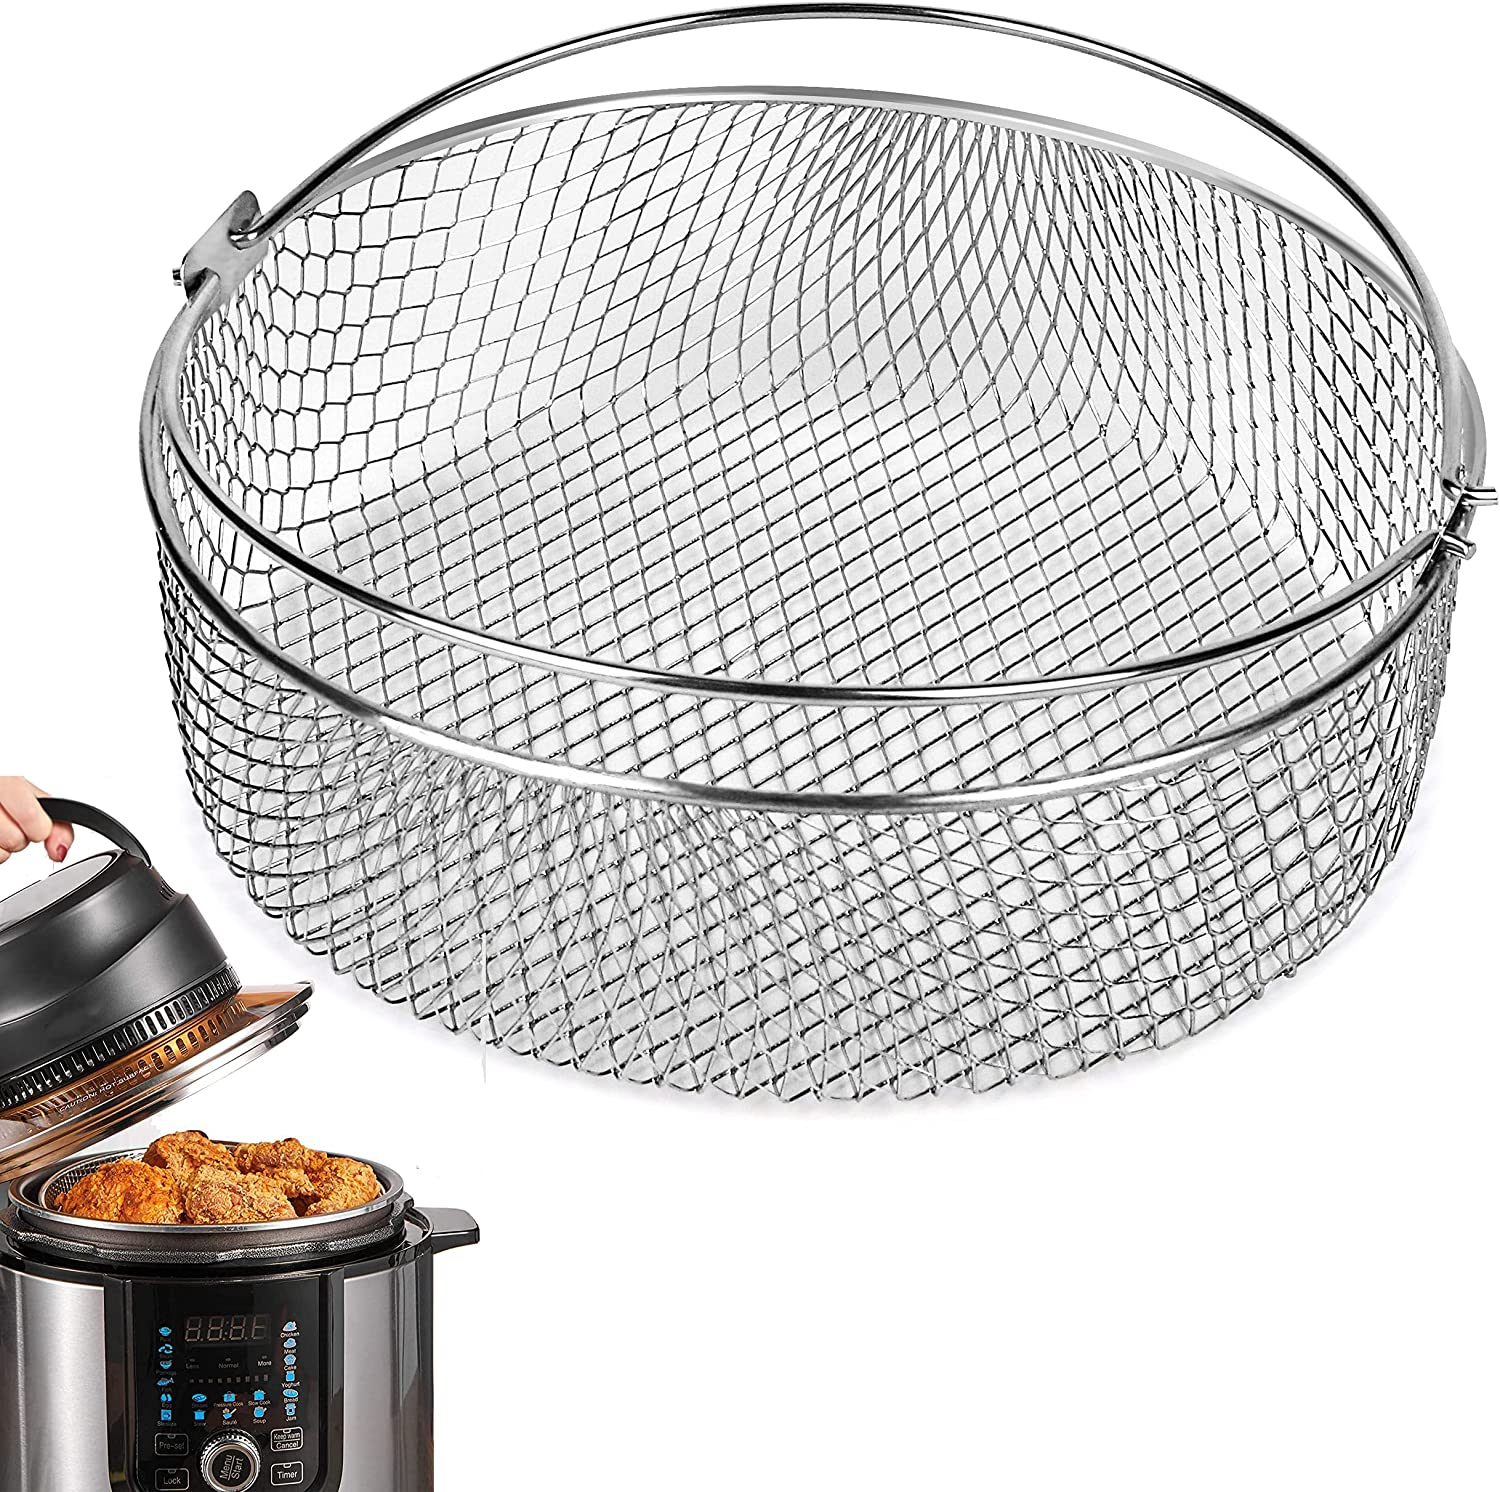 Air Fryer Basket for Instant Pot 6, 8Qt,Mesh Steamer Basket for Ninja Foodi 6.5, 8Qt,Air Fryer Grill Crisper Basket,Air Fryer Replacement Crisping Basket with Handle,Accessories for Air fryer